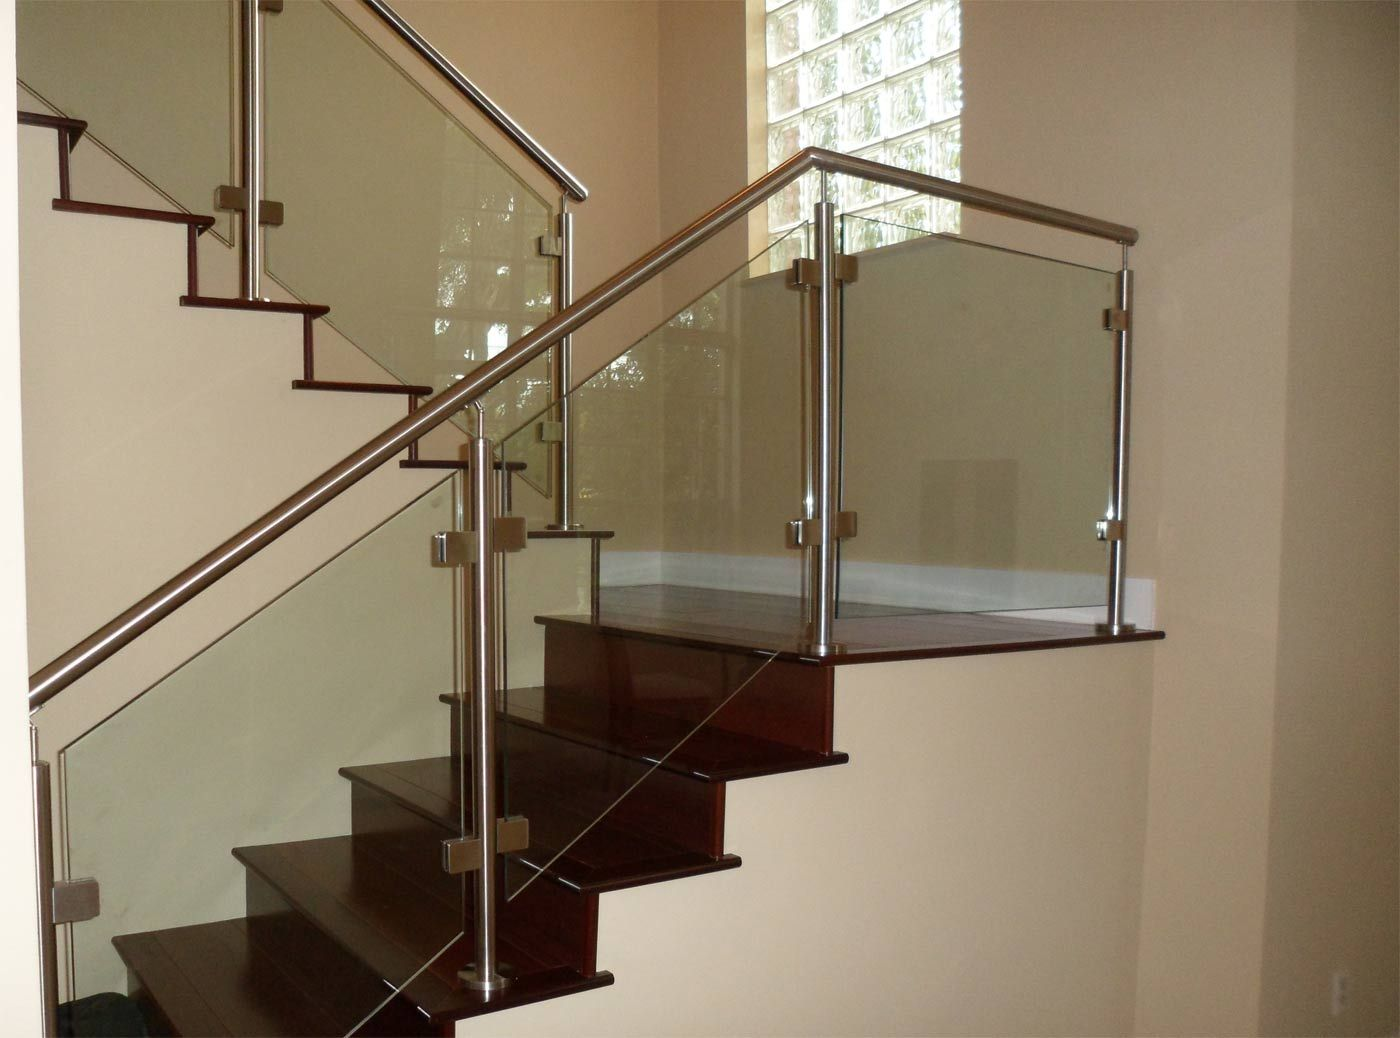 Best Glass Blocks For Light On Landing Modern Stairs Contemporary Stairs Stair Railing Design 640 x 480